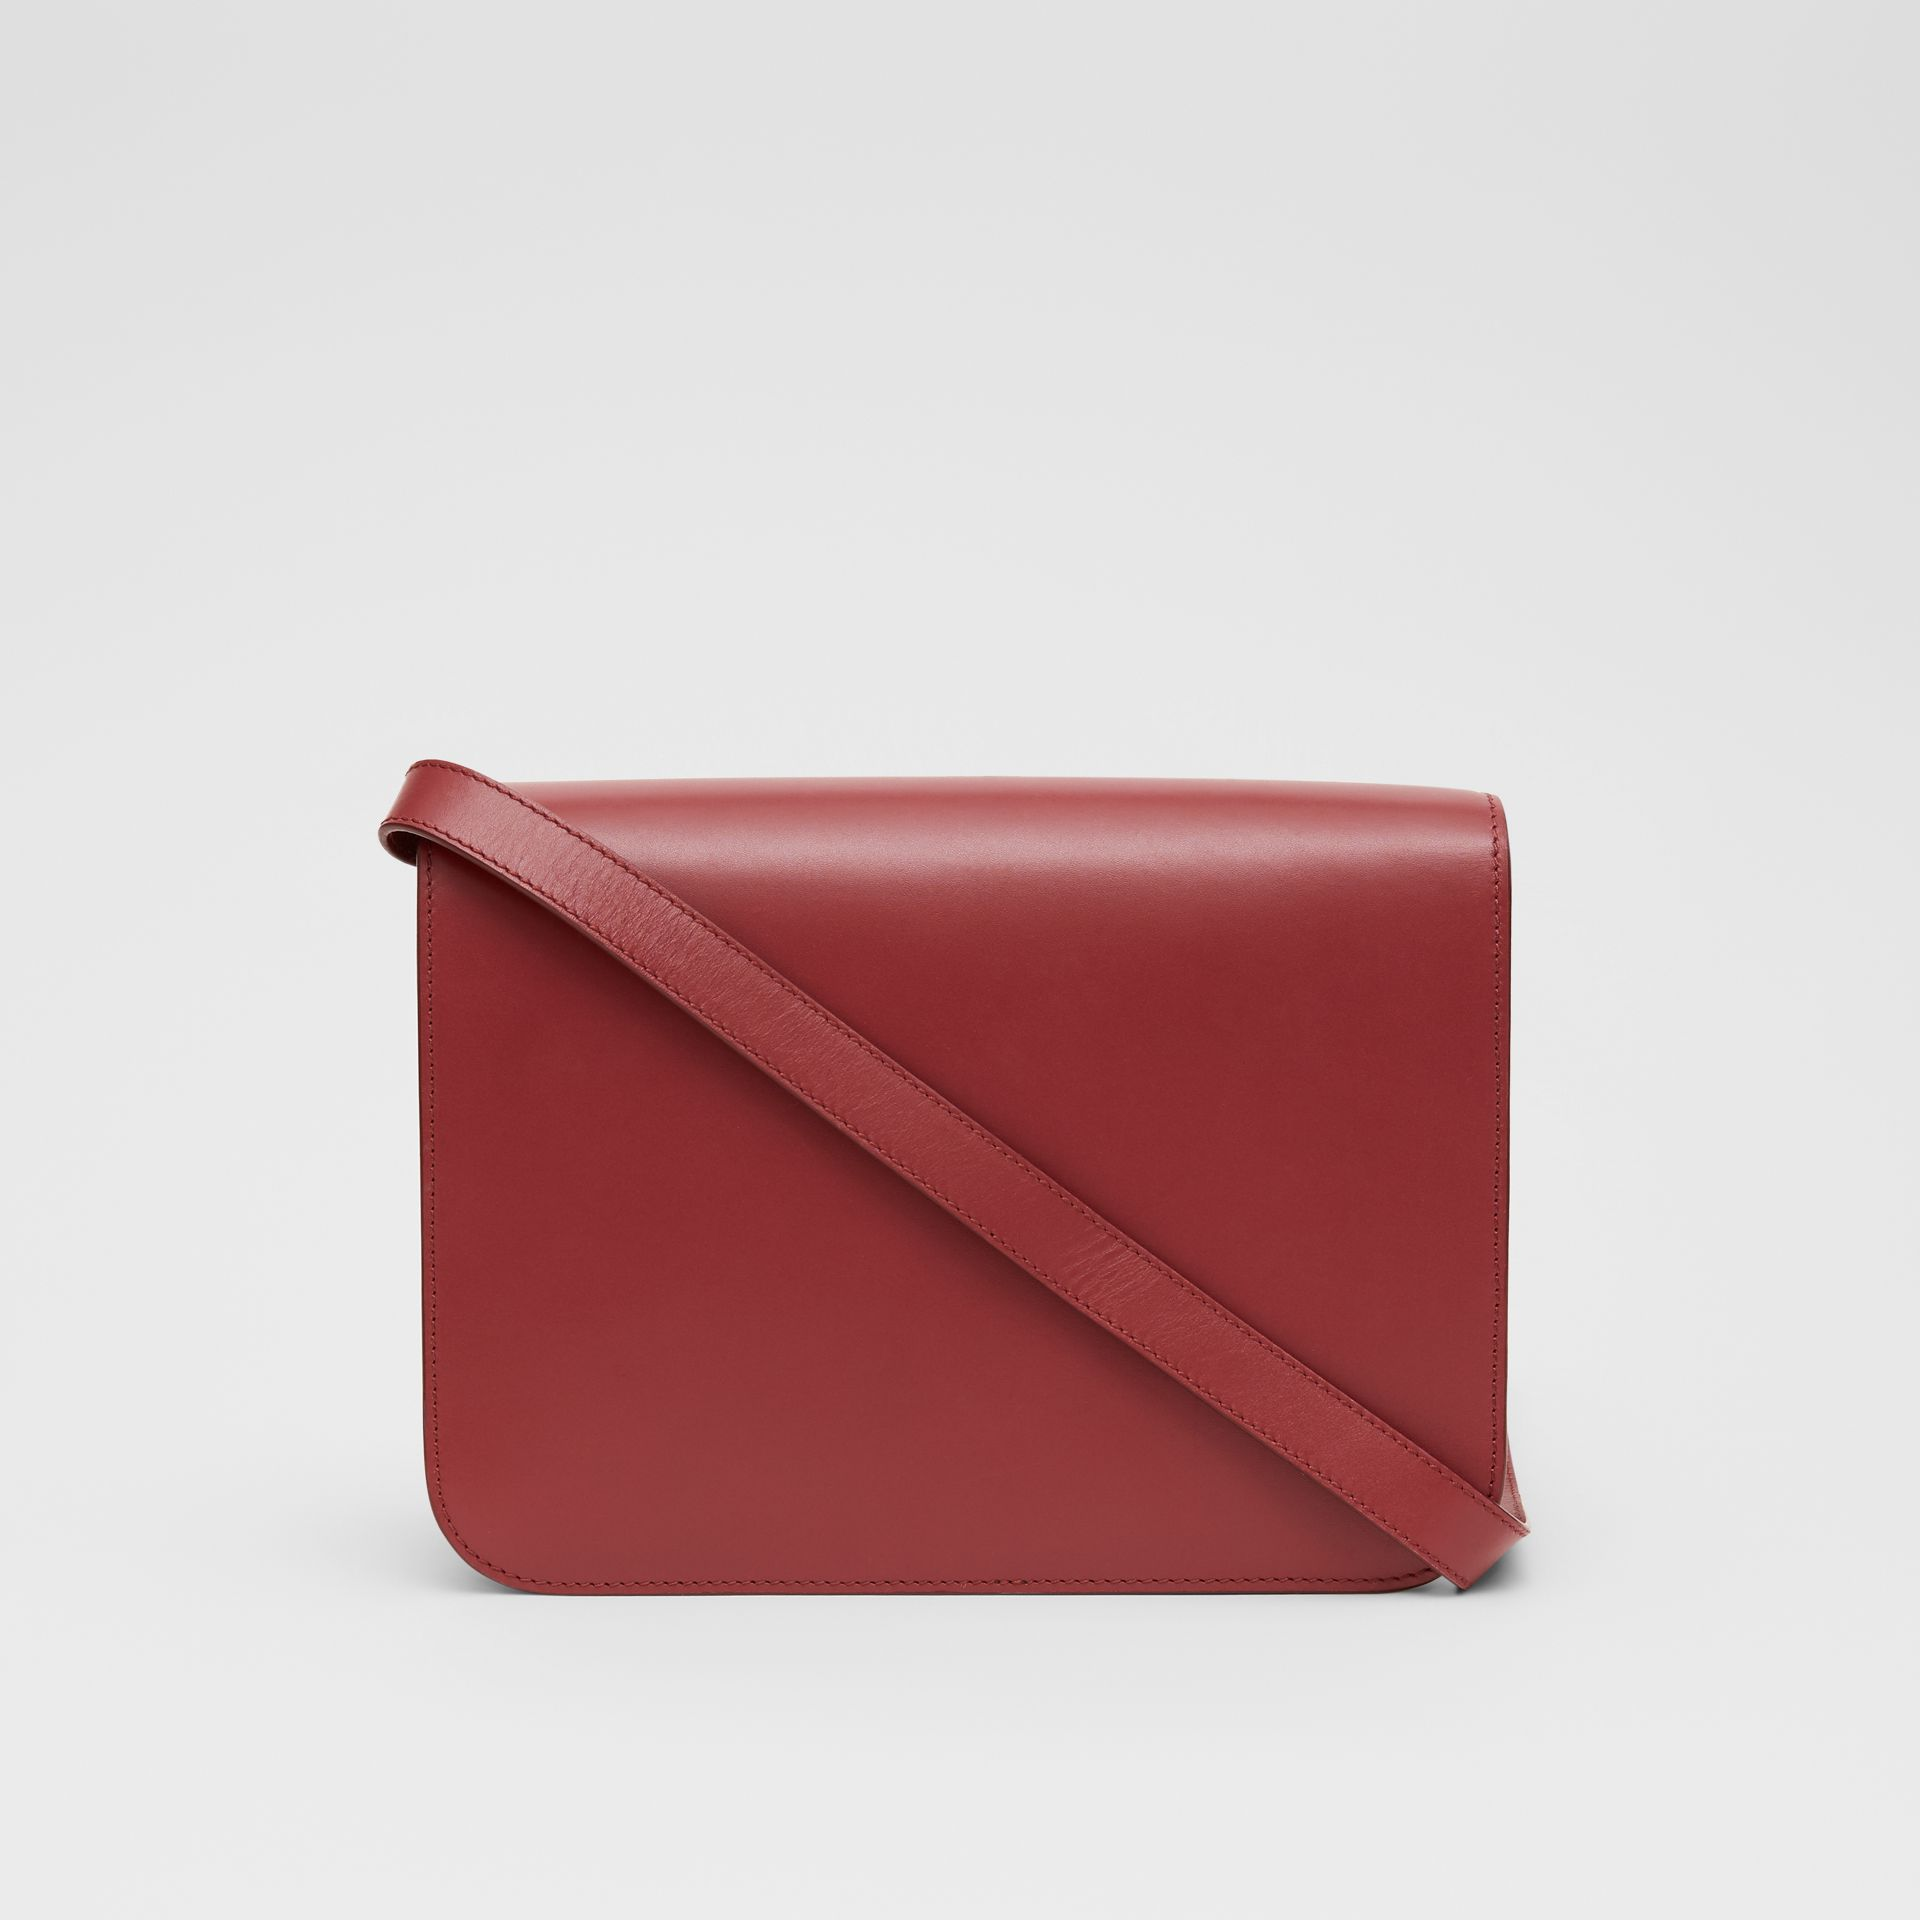 Medium Leather TB Bag in Crimson - Women | Burberry - gallery image 7